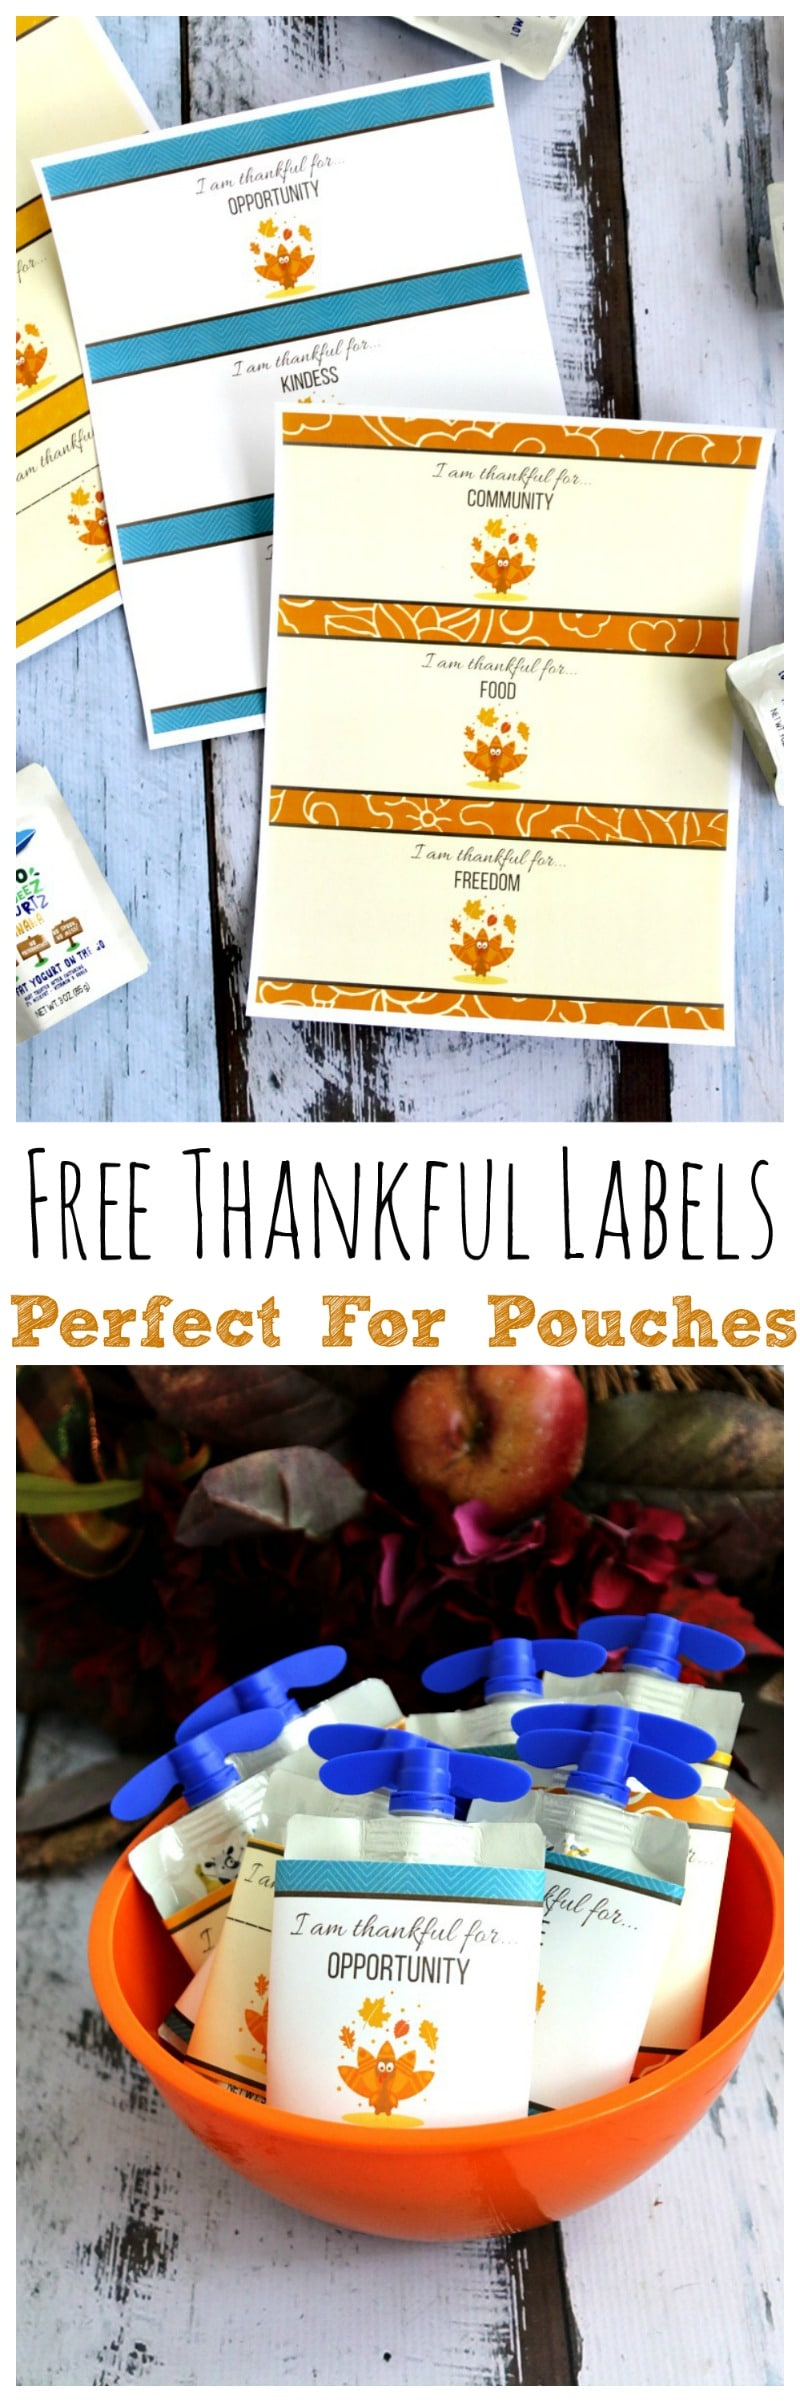 Free Thankful Labels (printable download) for applesauce and yogurt pouches, put in childs lunch for a fun note surprise to remind us what we are grateful for this season